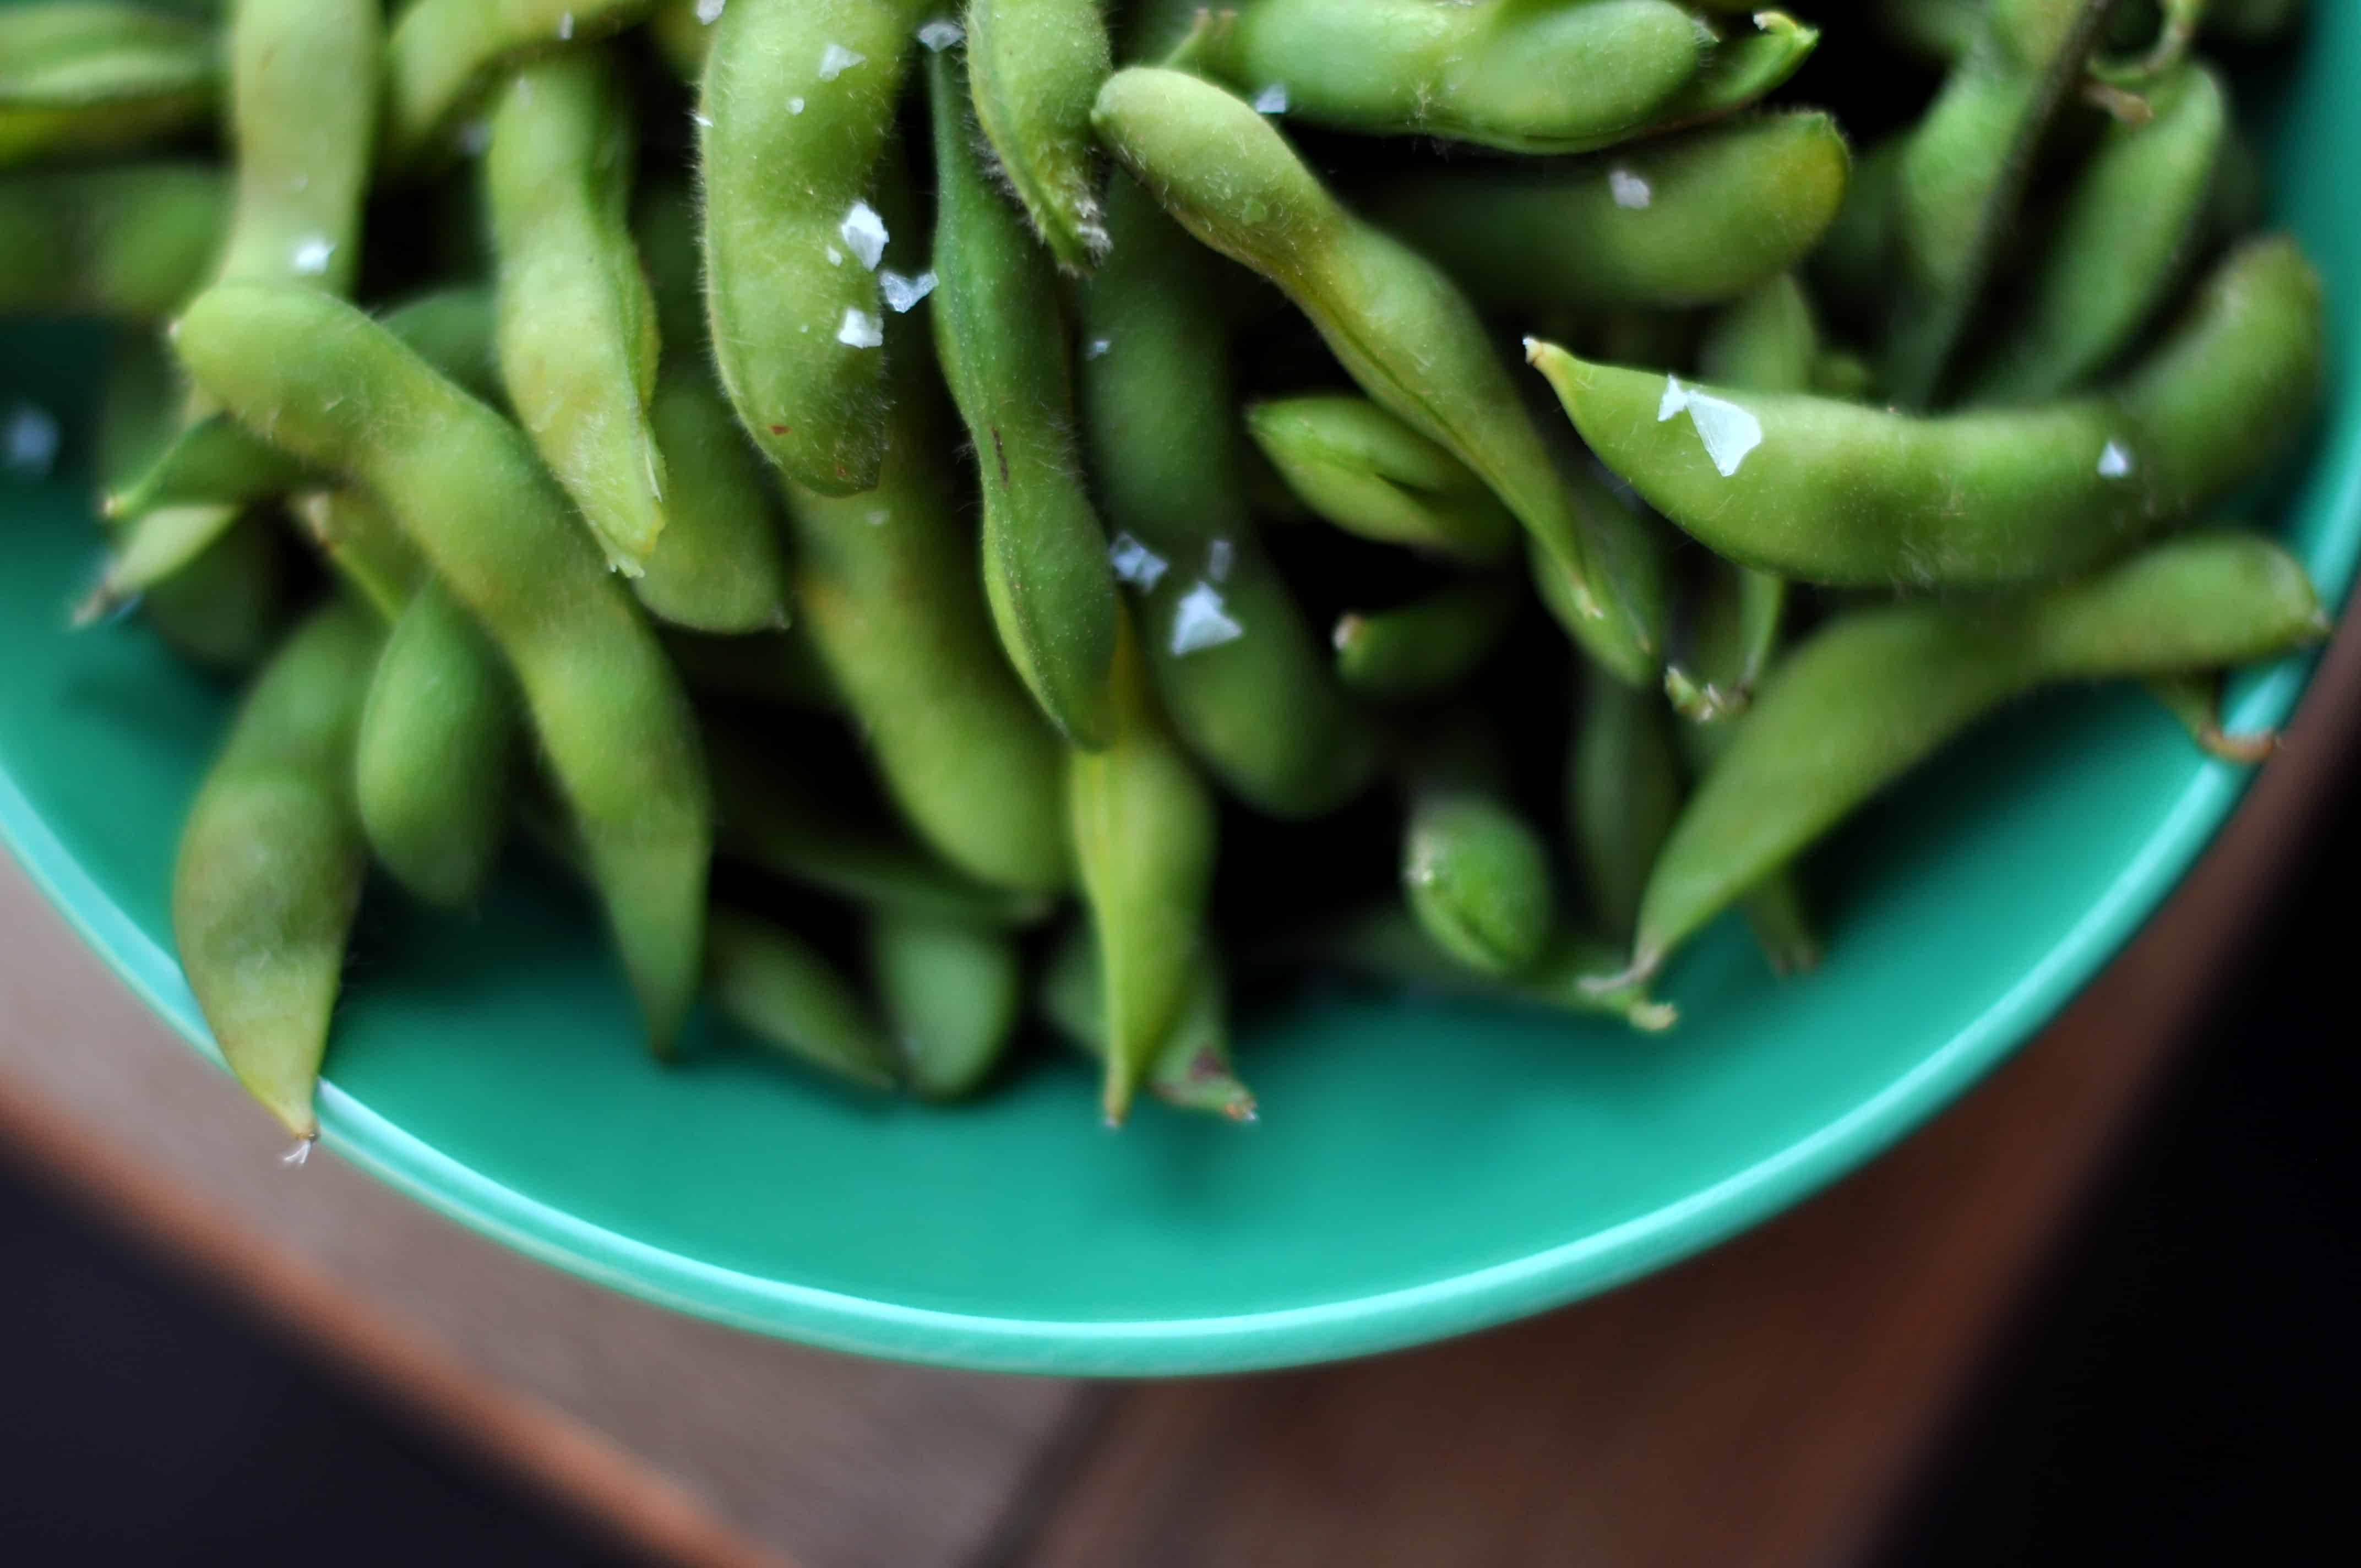 Should I stay away from soy if I have breast cancer?